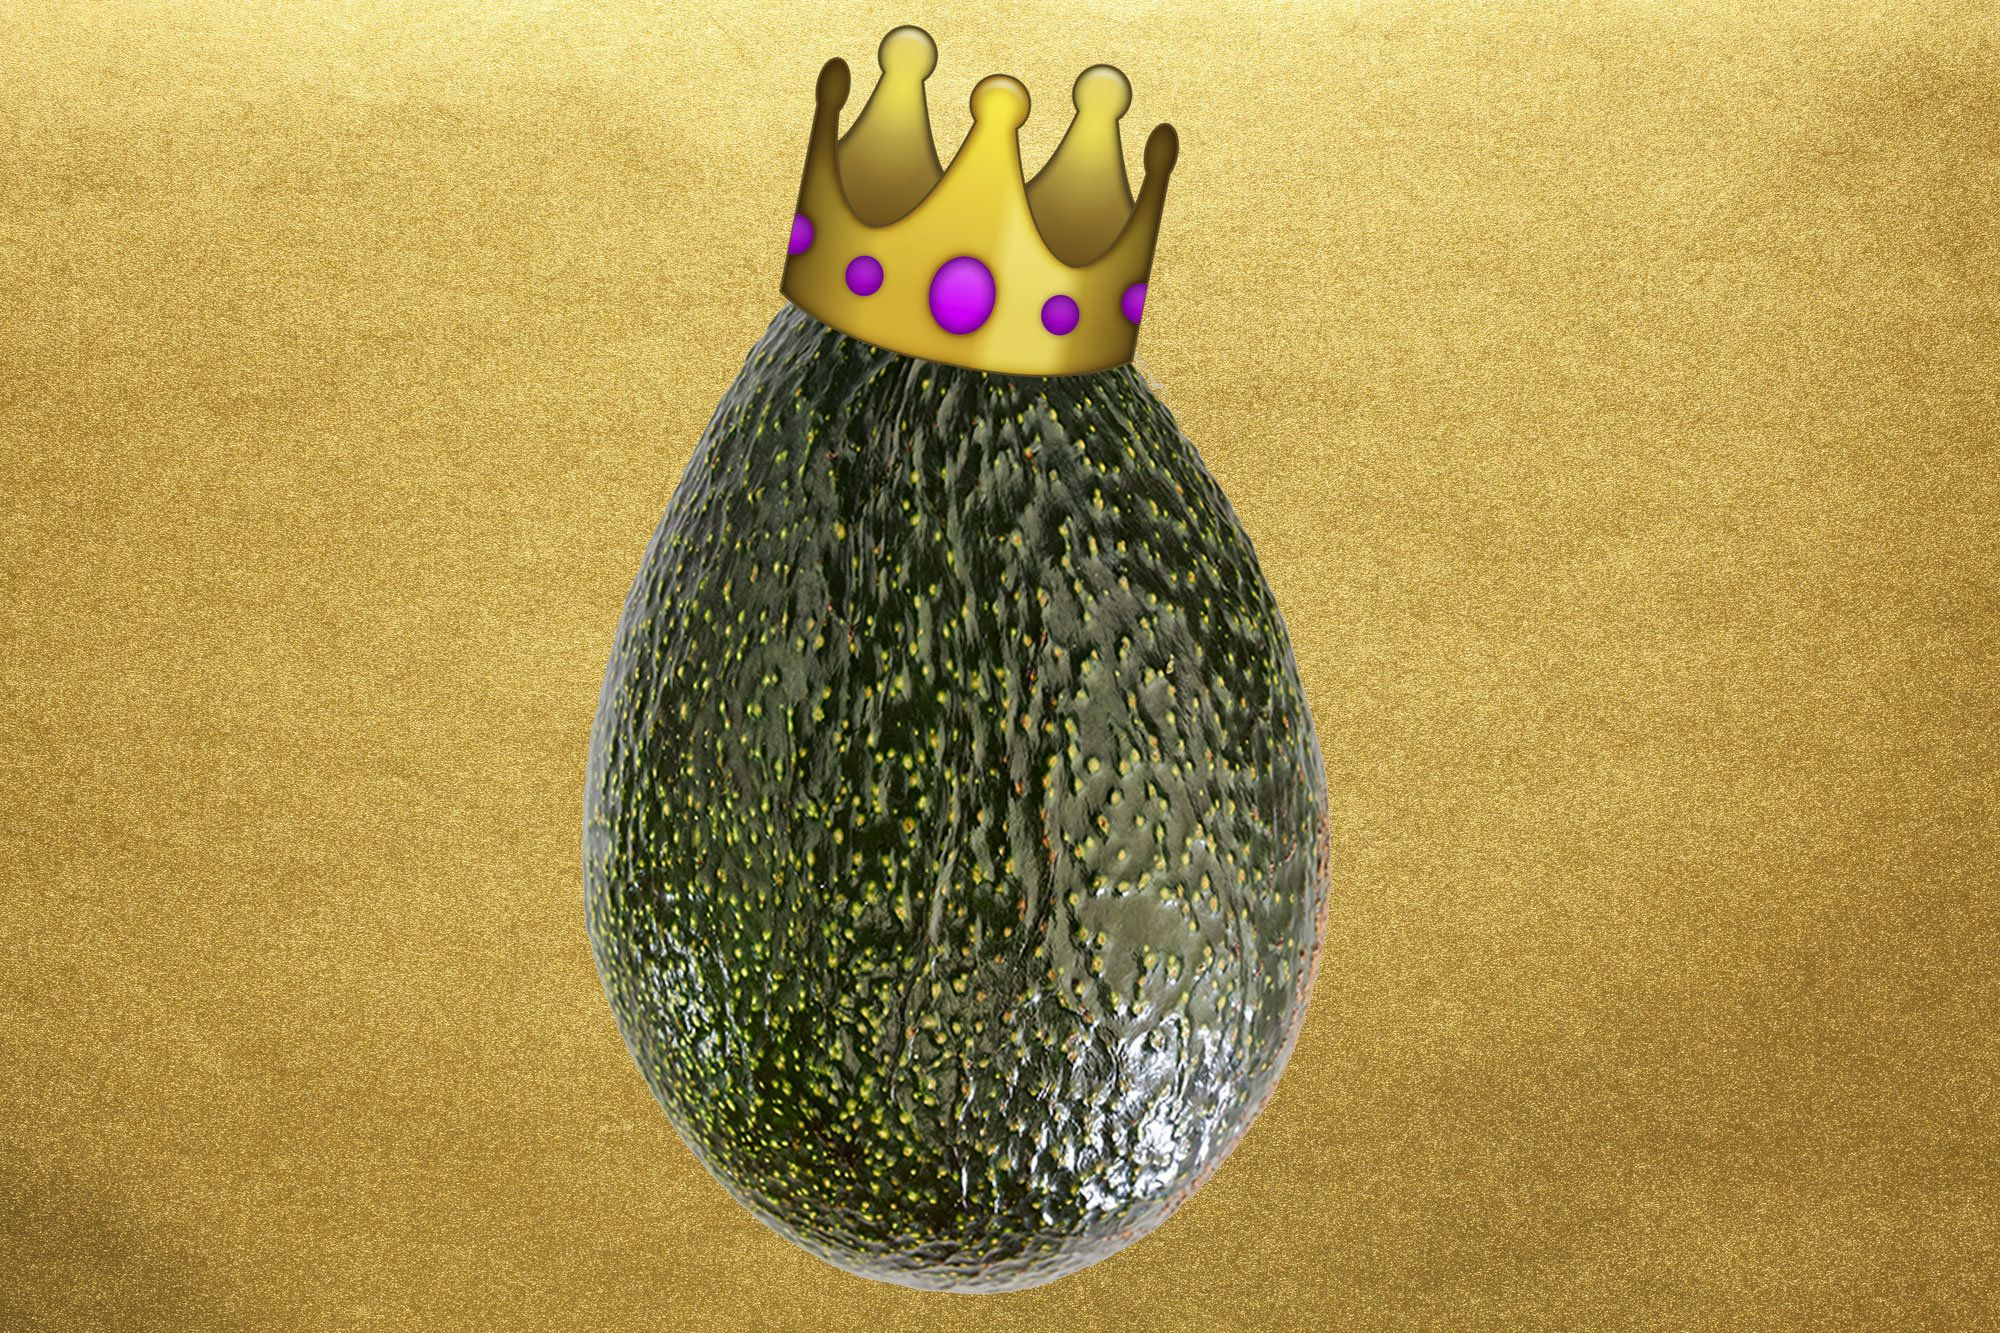 'Rare Gold-Flecked' Avocado Is Here To Give Your Brunch A Royal